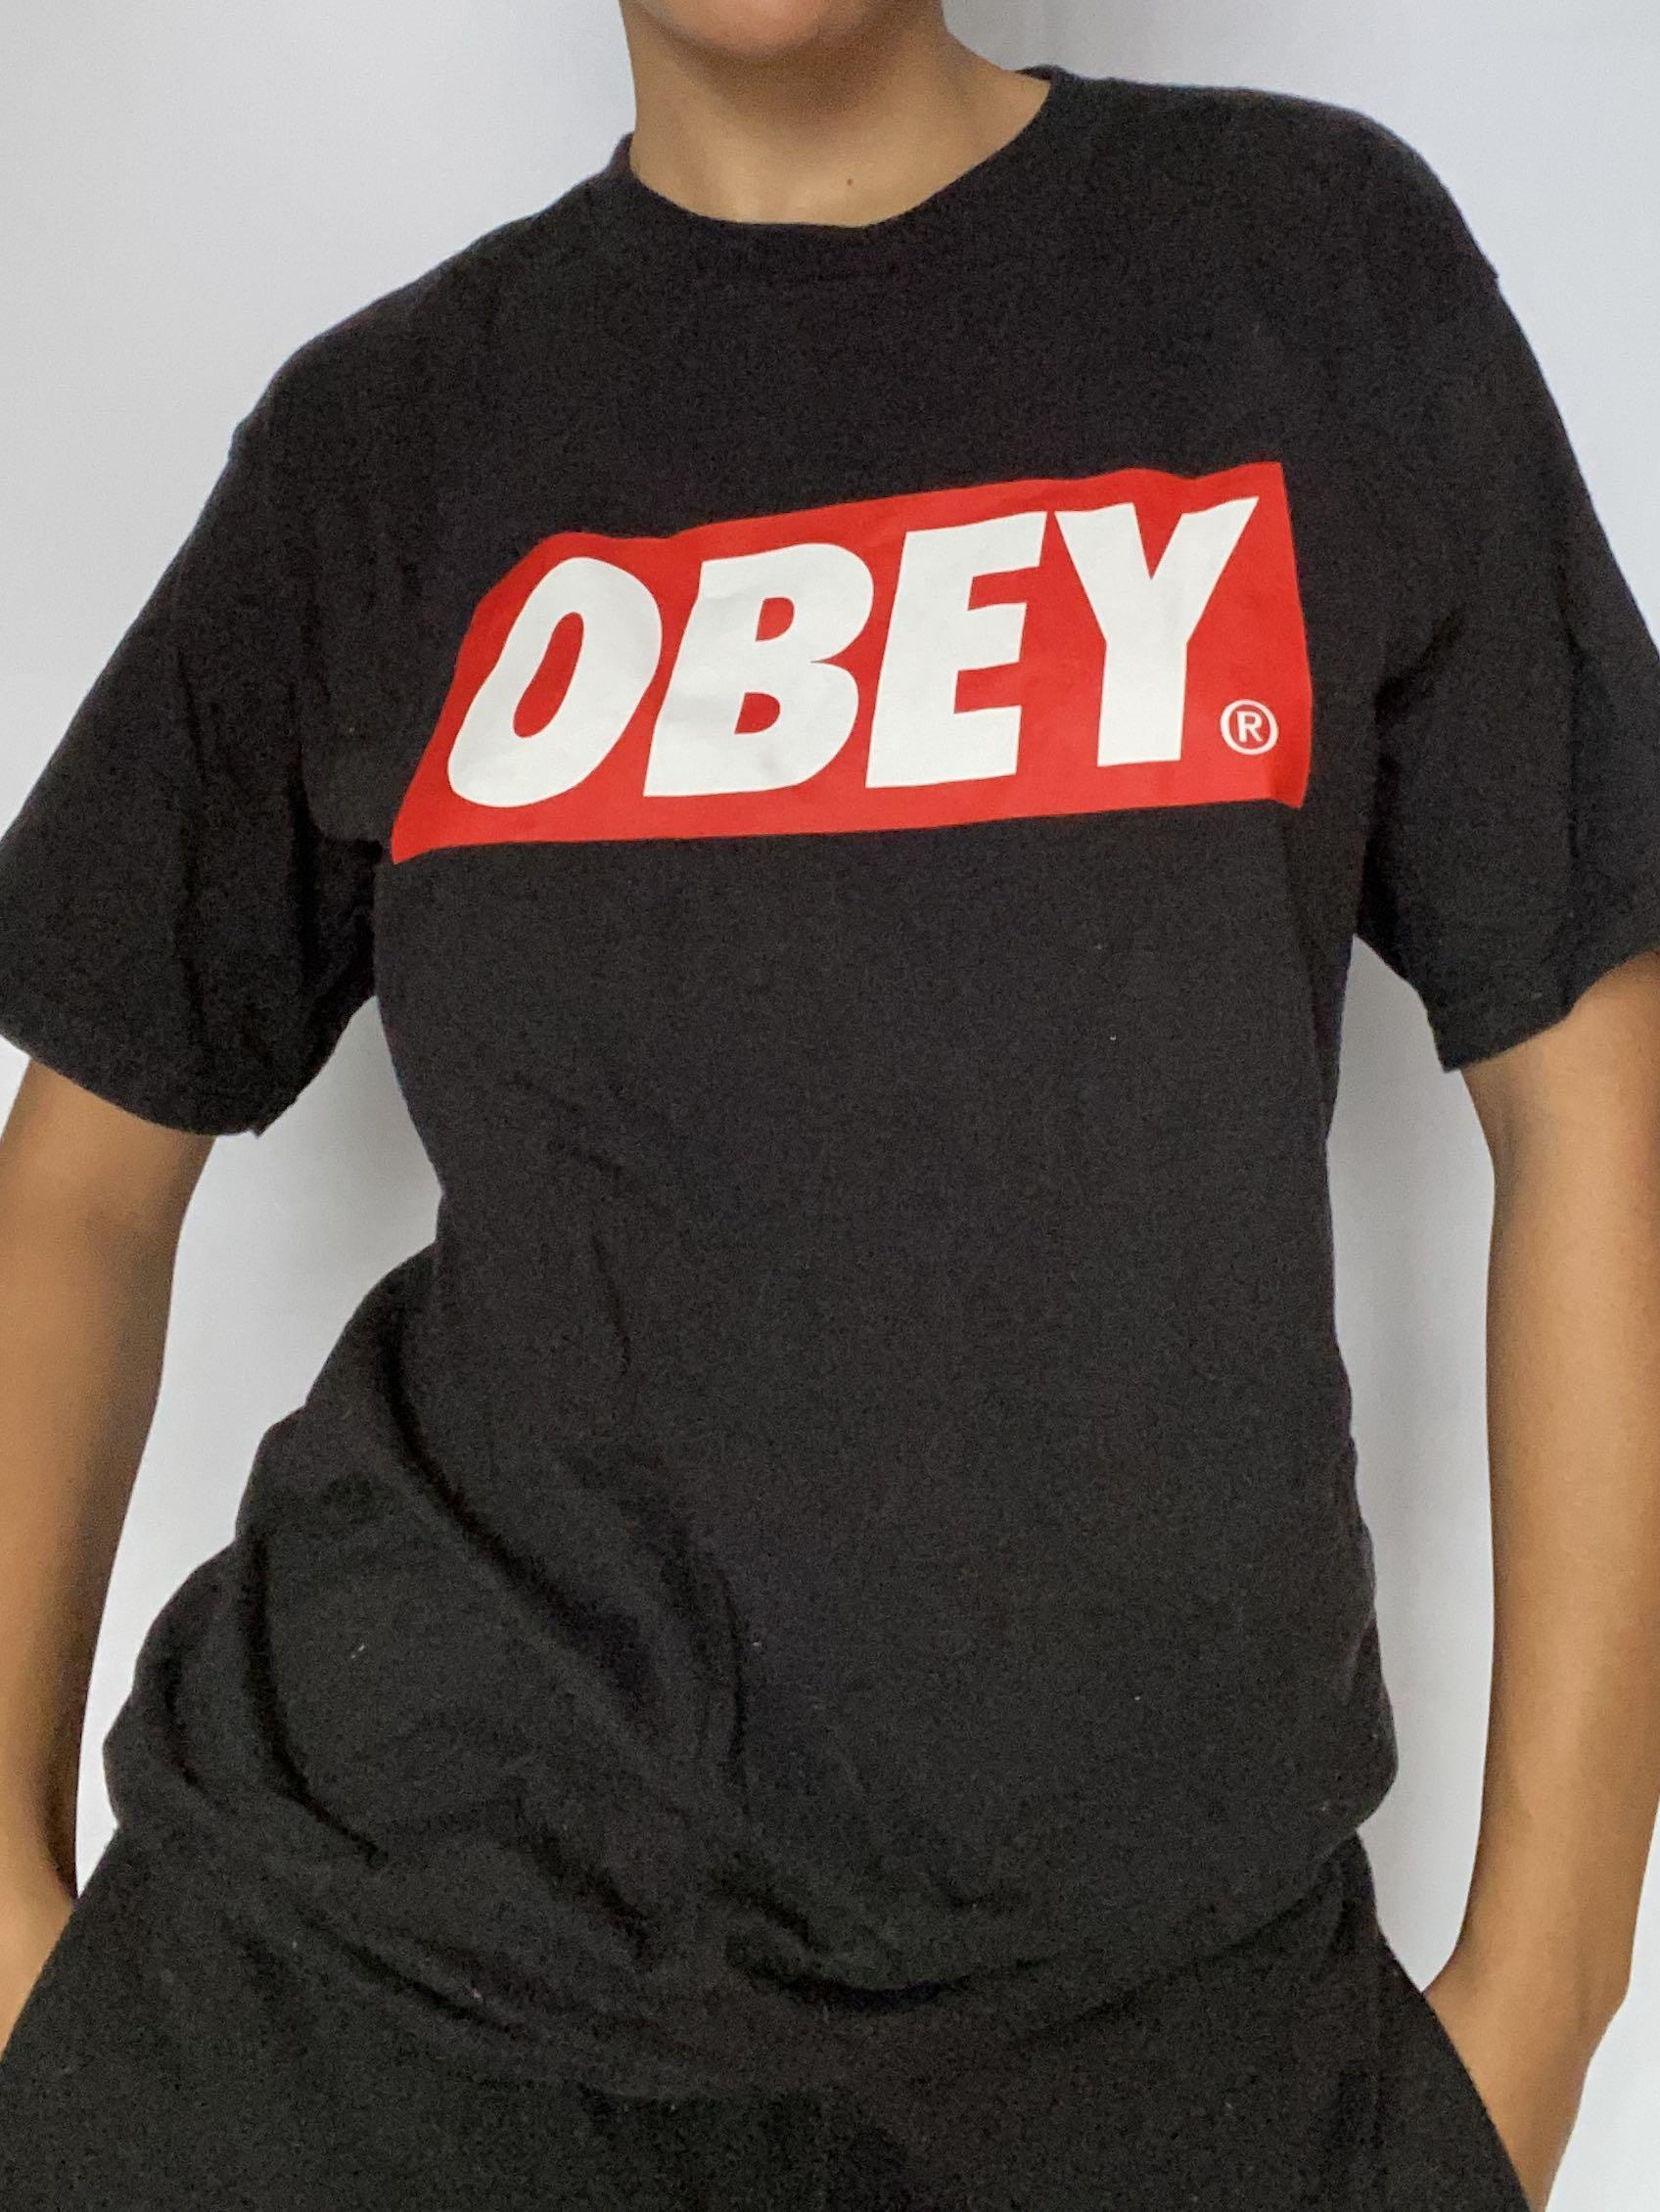 Classic OBEY Tee